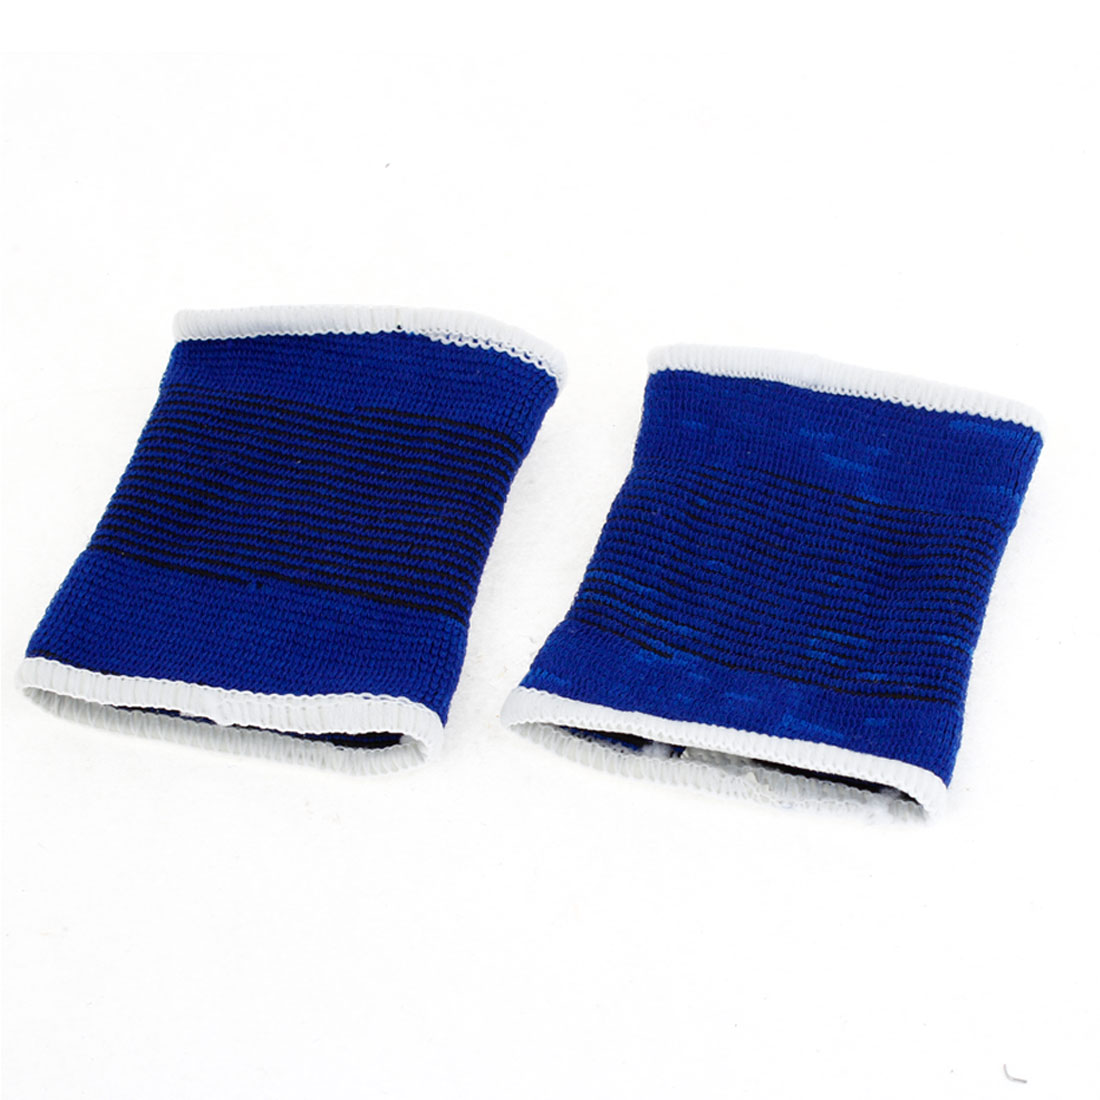 2 Pcs Stripe Pattern Stretchy Sports Protective Wrist Band Support Blue Black